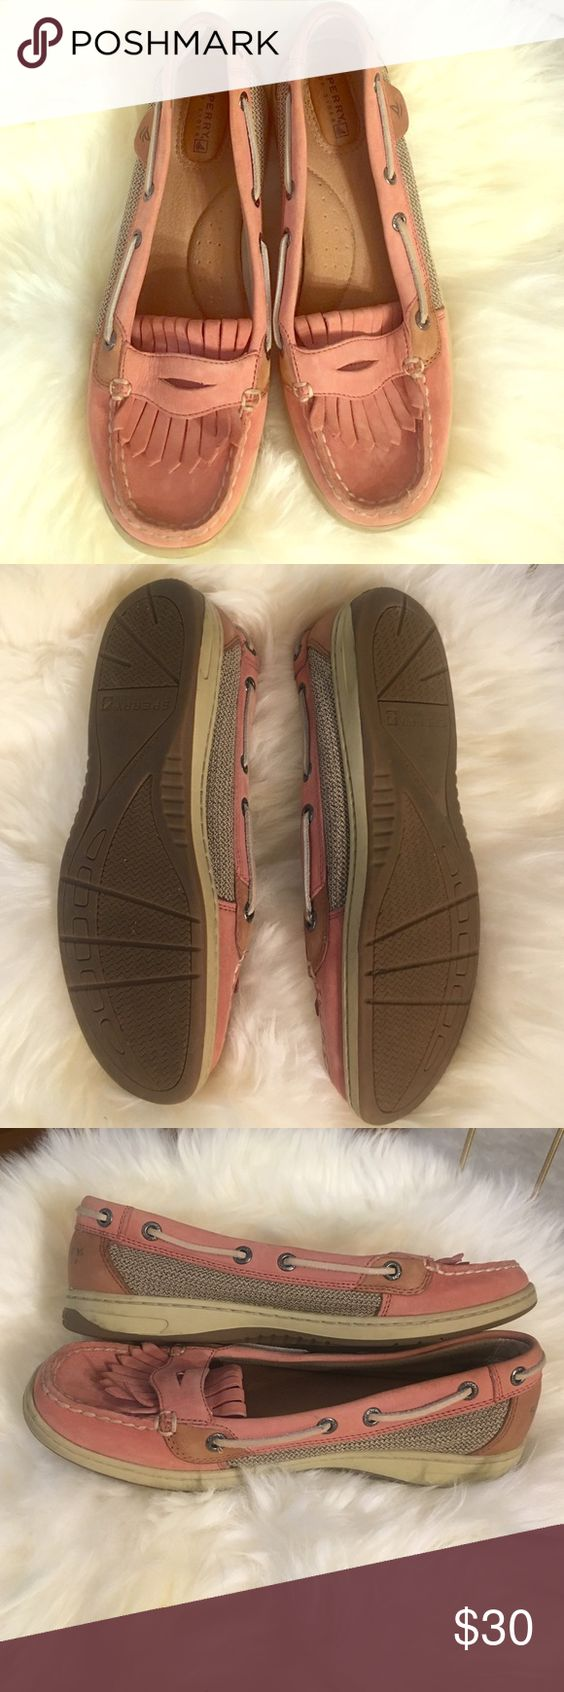 Sperry boat shoes 8.5. Sperry boat shoes. Slip on shoes - no laces! Light pink like new Sperry Shoes Flats & Loafers